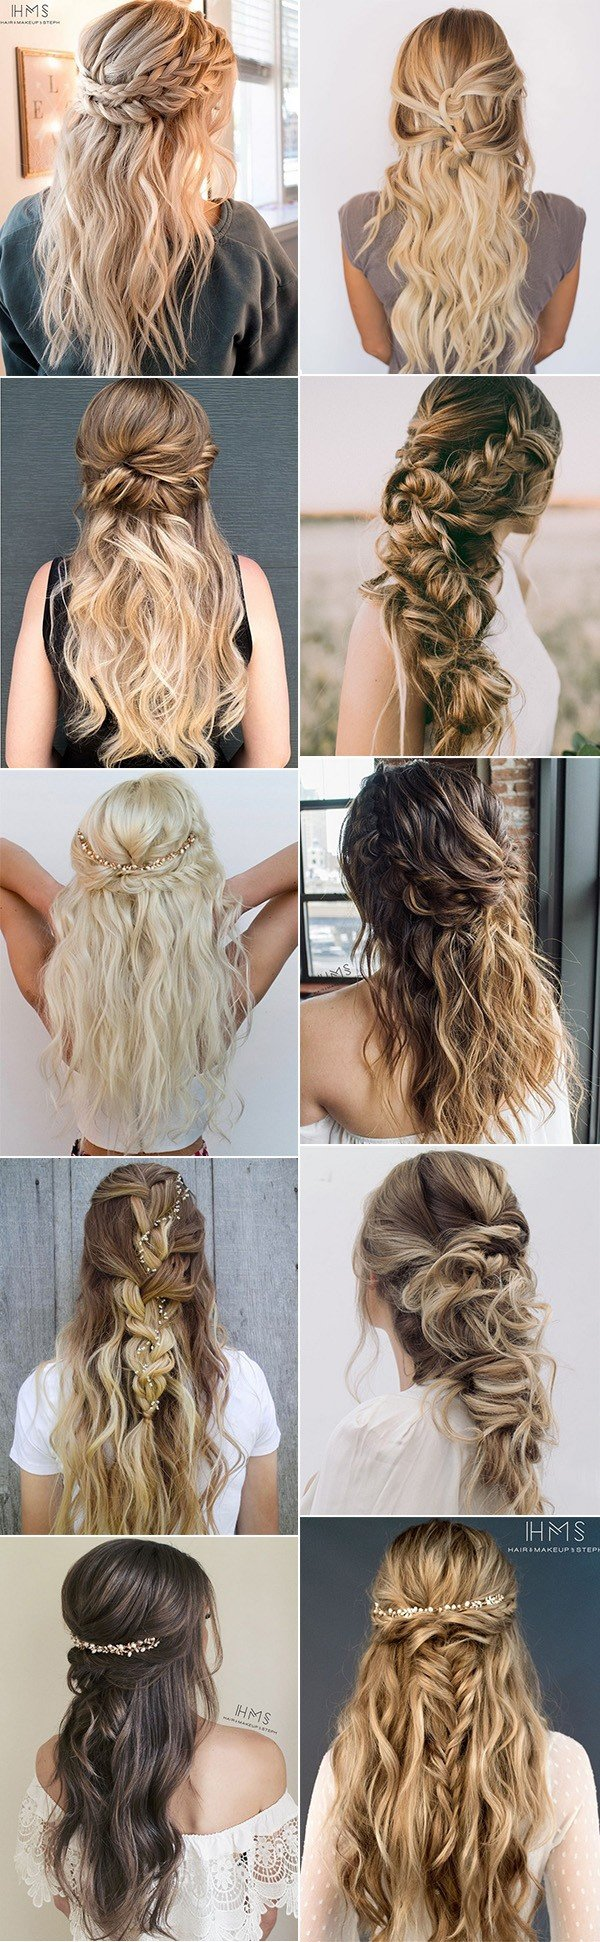 trending half up half down wedding hairstyles for 2018